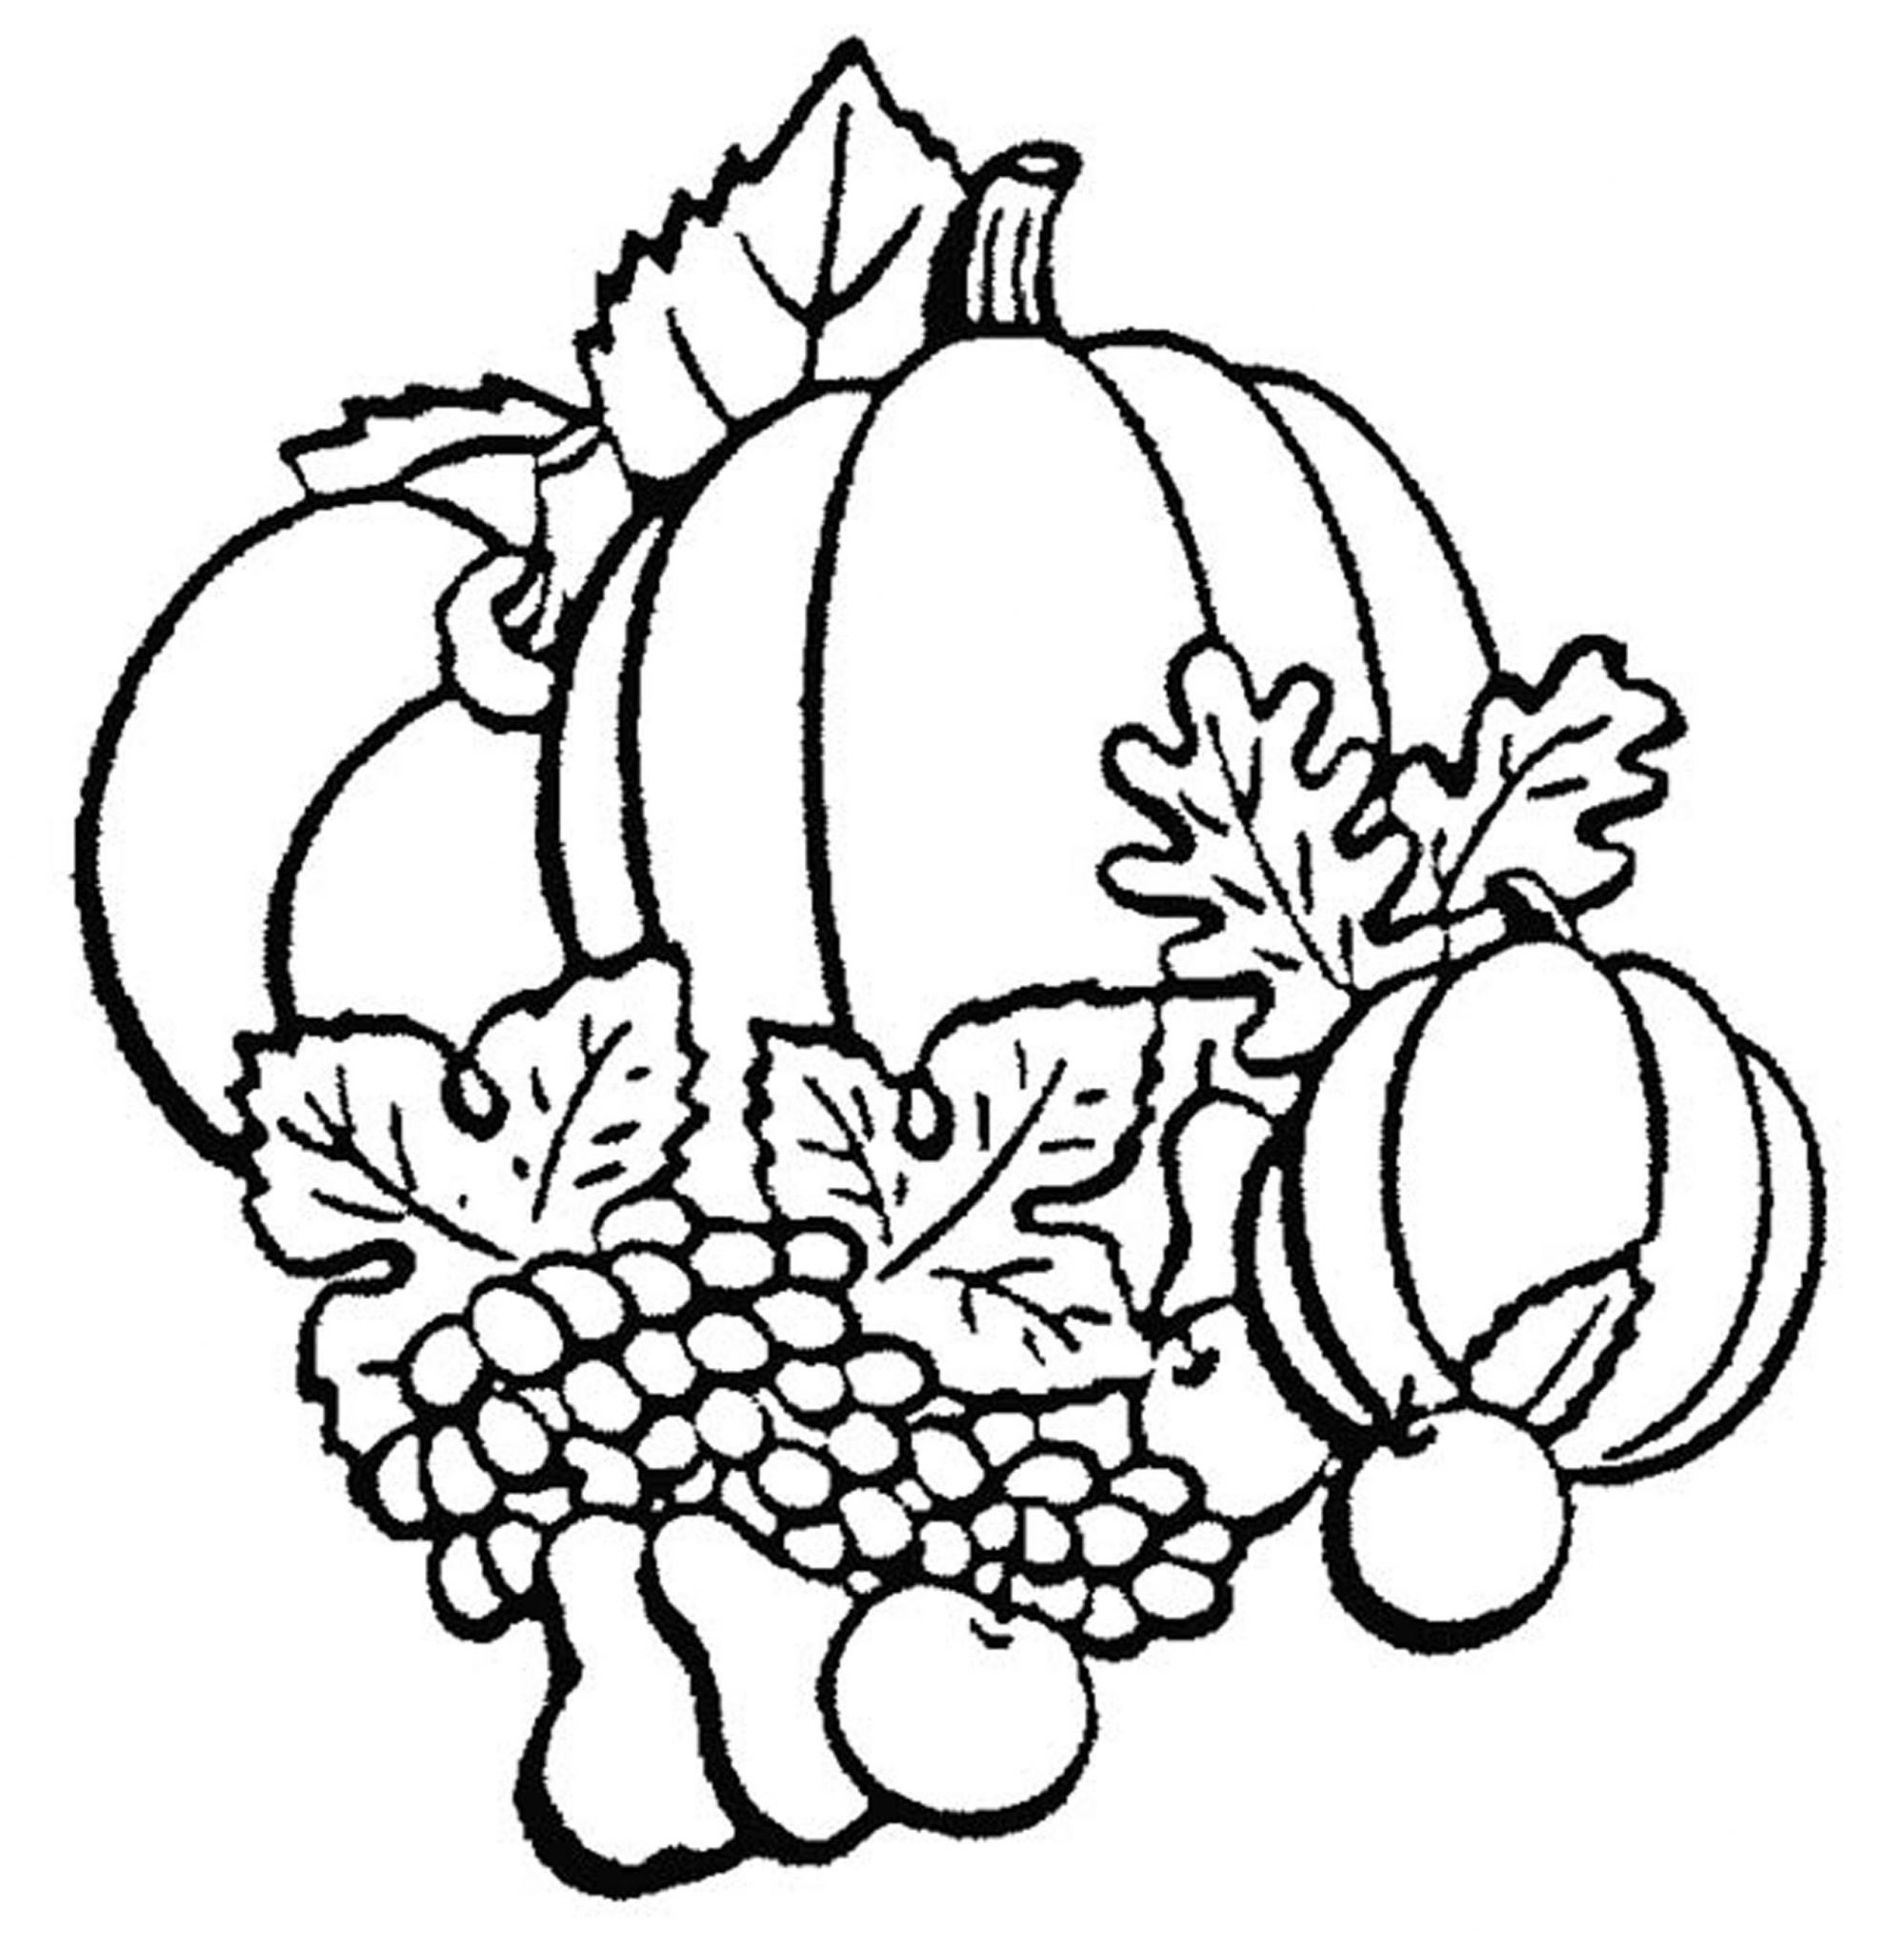 coloring worksheets grade 4 4th grade coloring pages free download on clipartmag worksheets coloring 4 grade